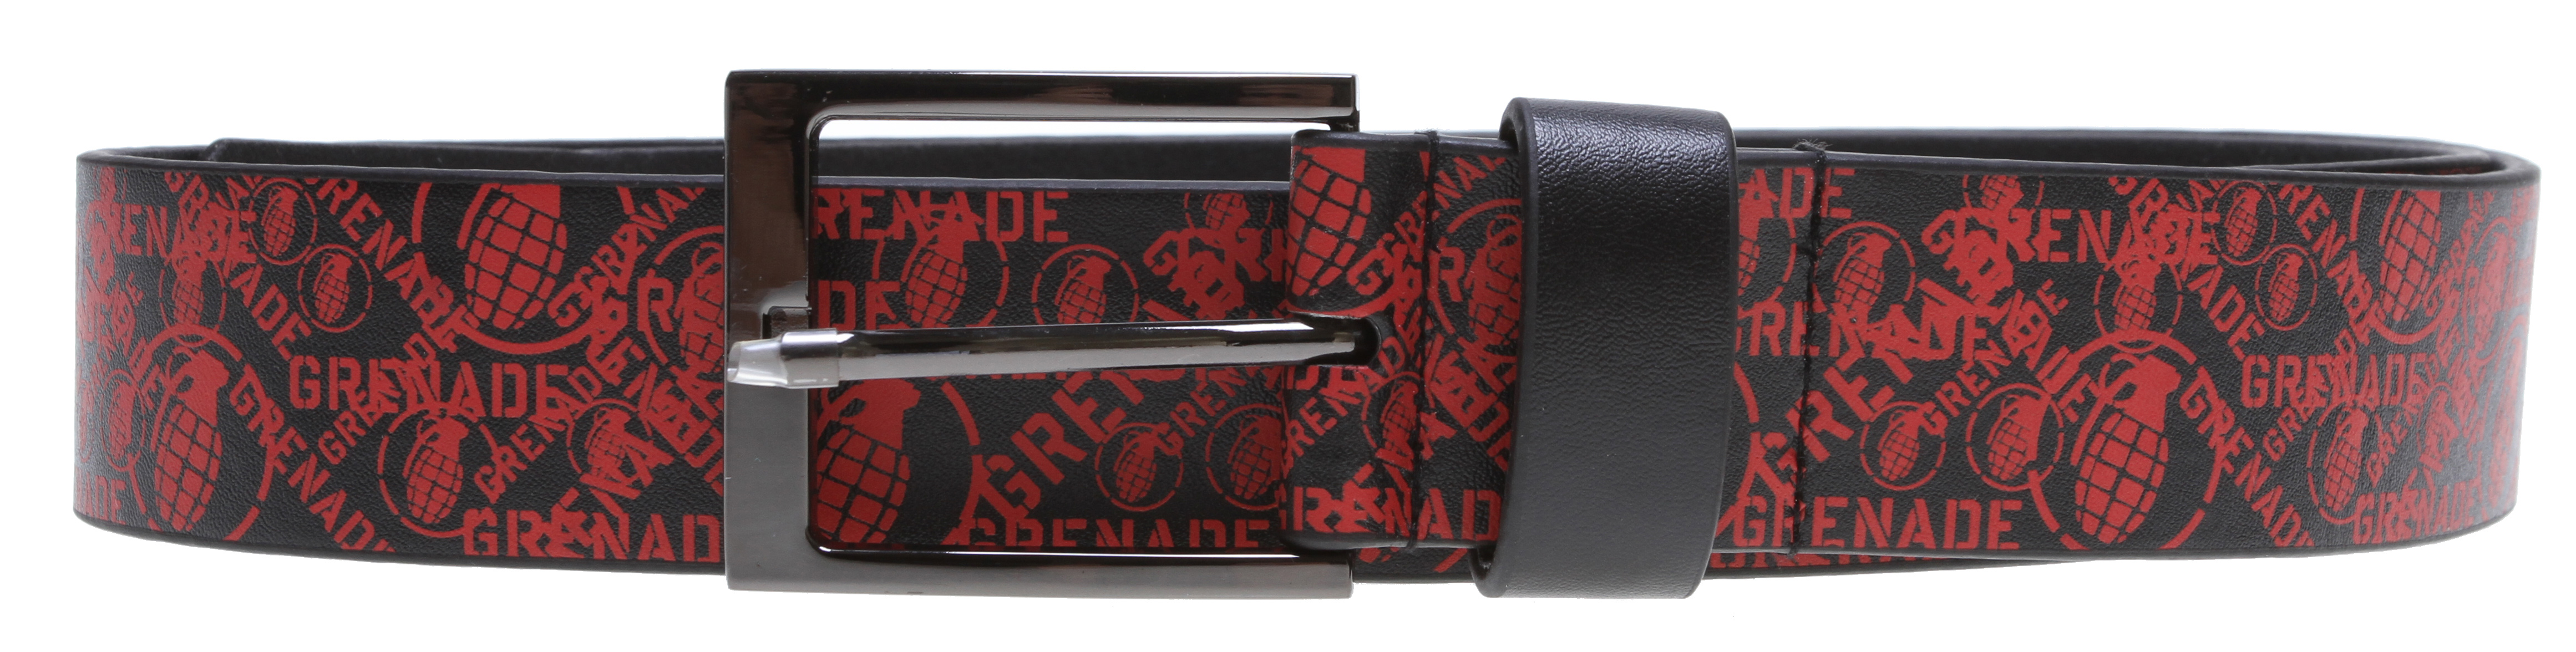 Skateboard Key Features of the Grenade Attack Belt: Leather Screen printed graphics - $15.00